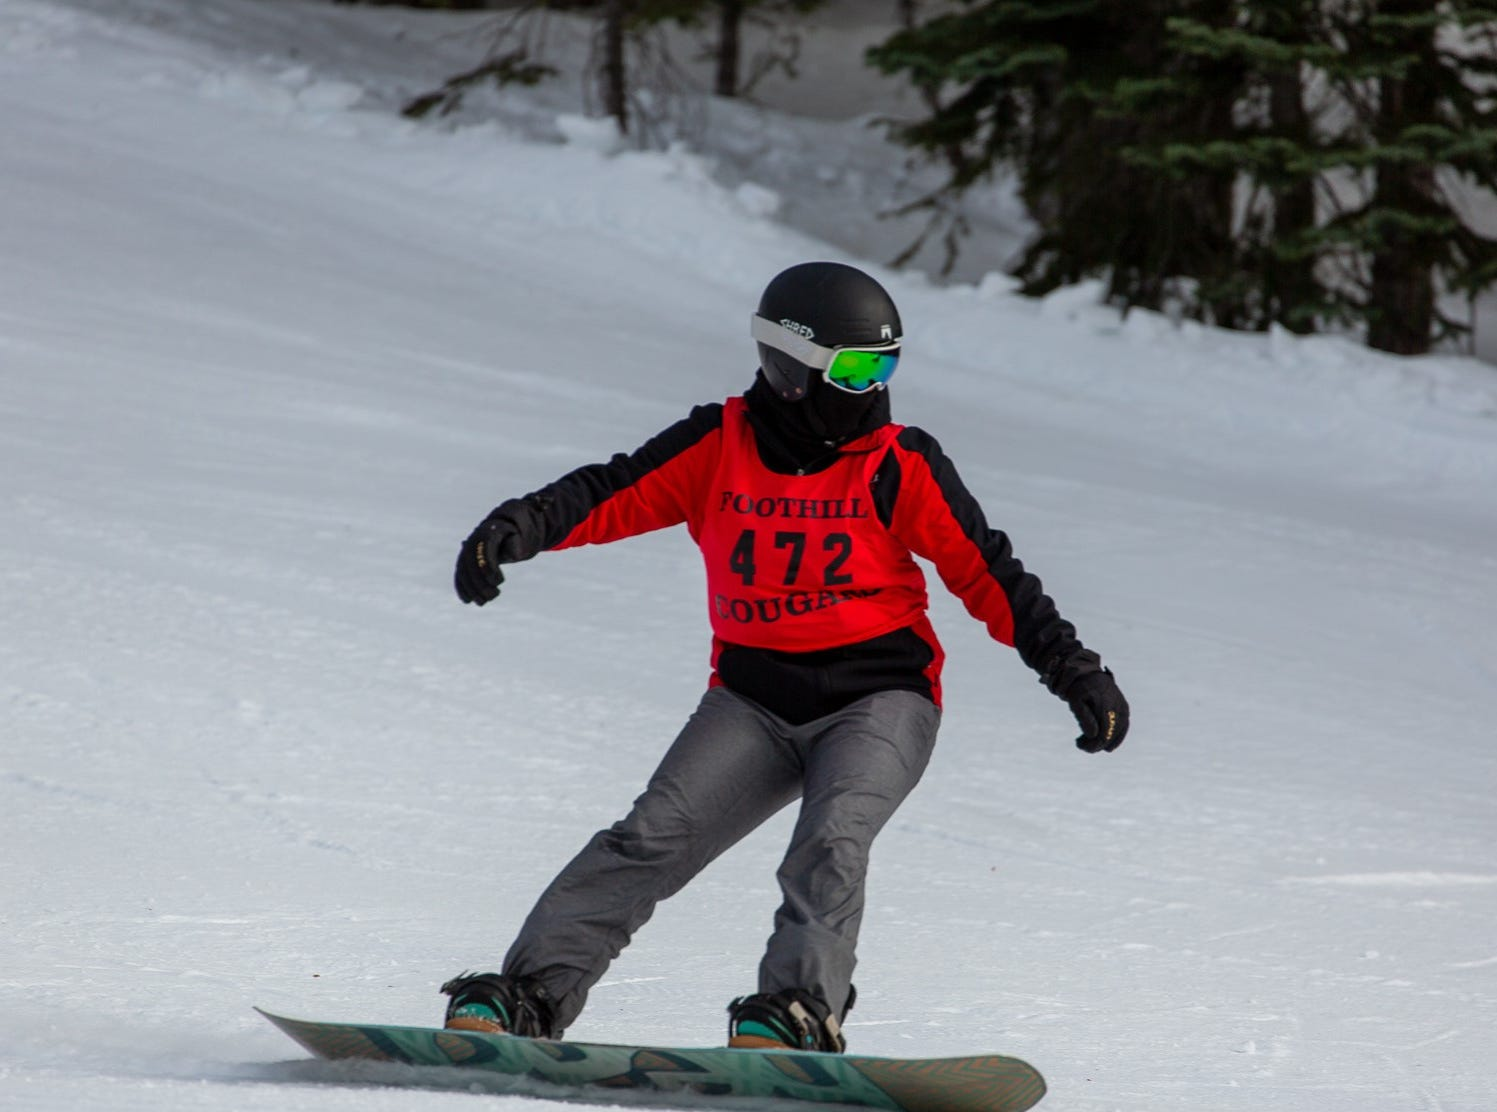 Mattie McKee of Foothill competes in the first high school snowboard meet of 2019 on Monday, Jan. 14 at Mt. Shasta Ski Park.